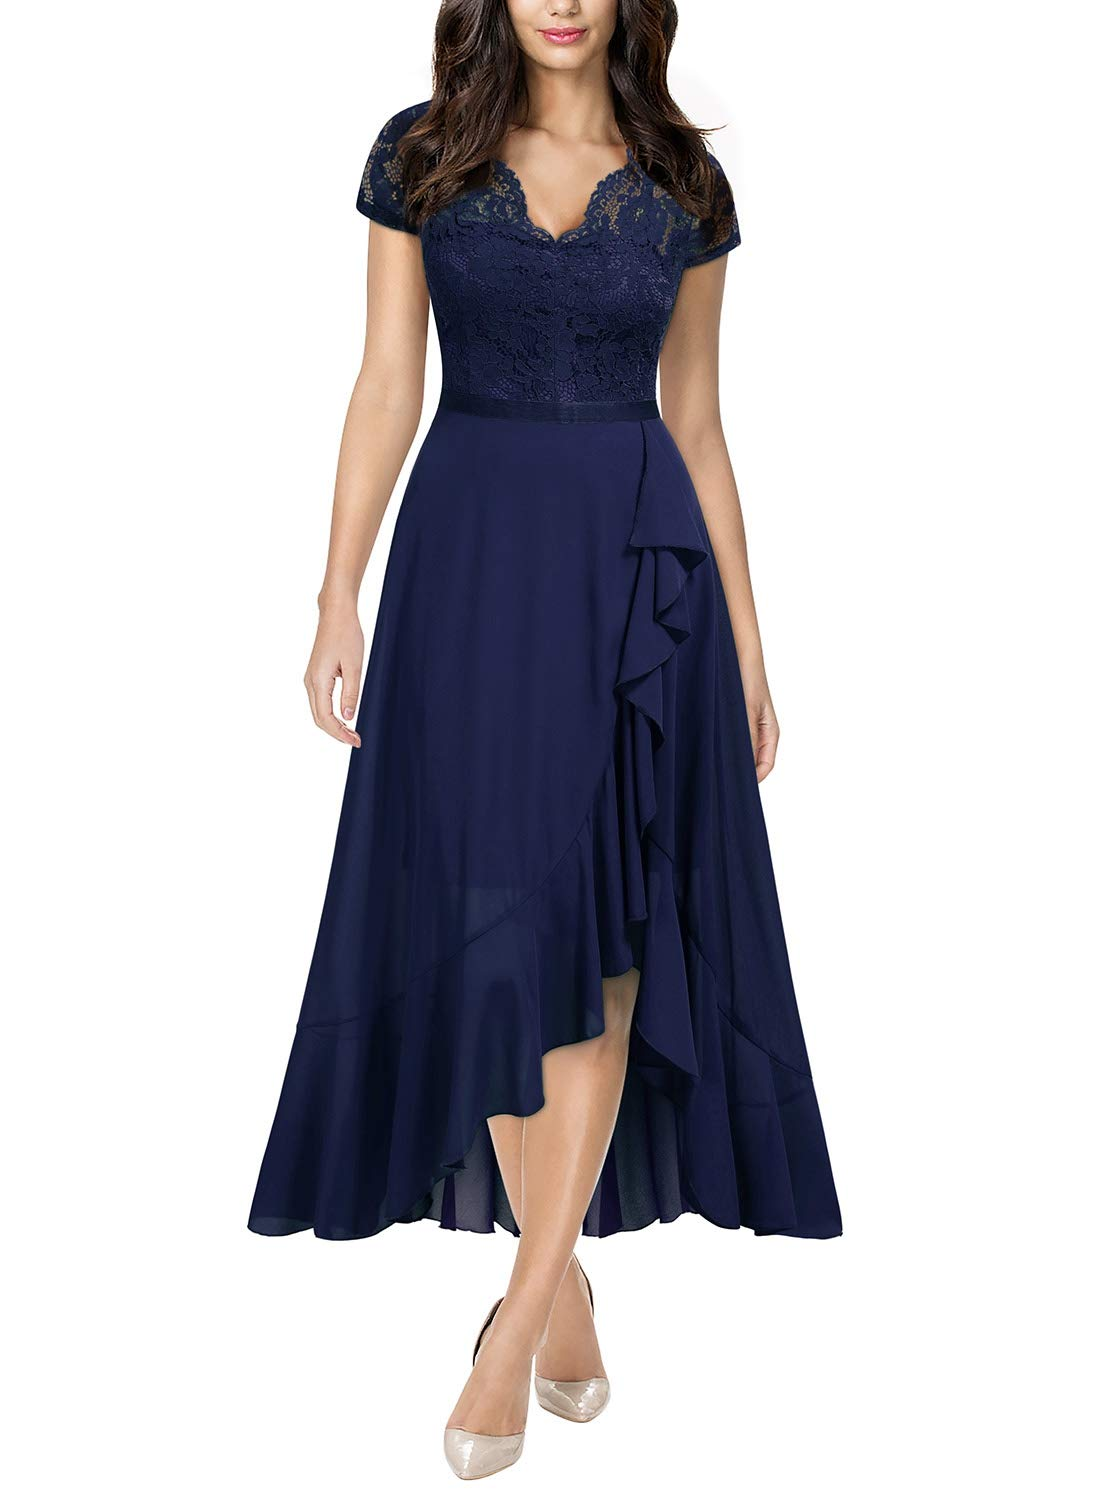 Party Dresses - Women's Formal Floral Lace Ruffle Cocktail Party Dress